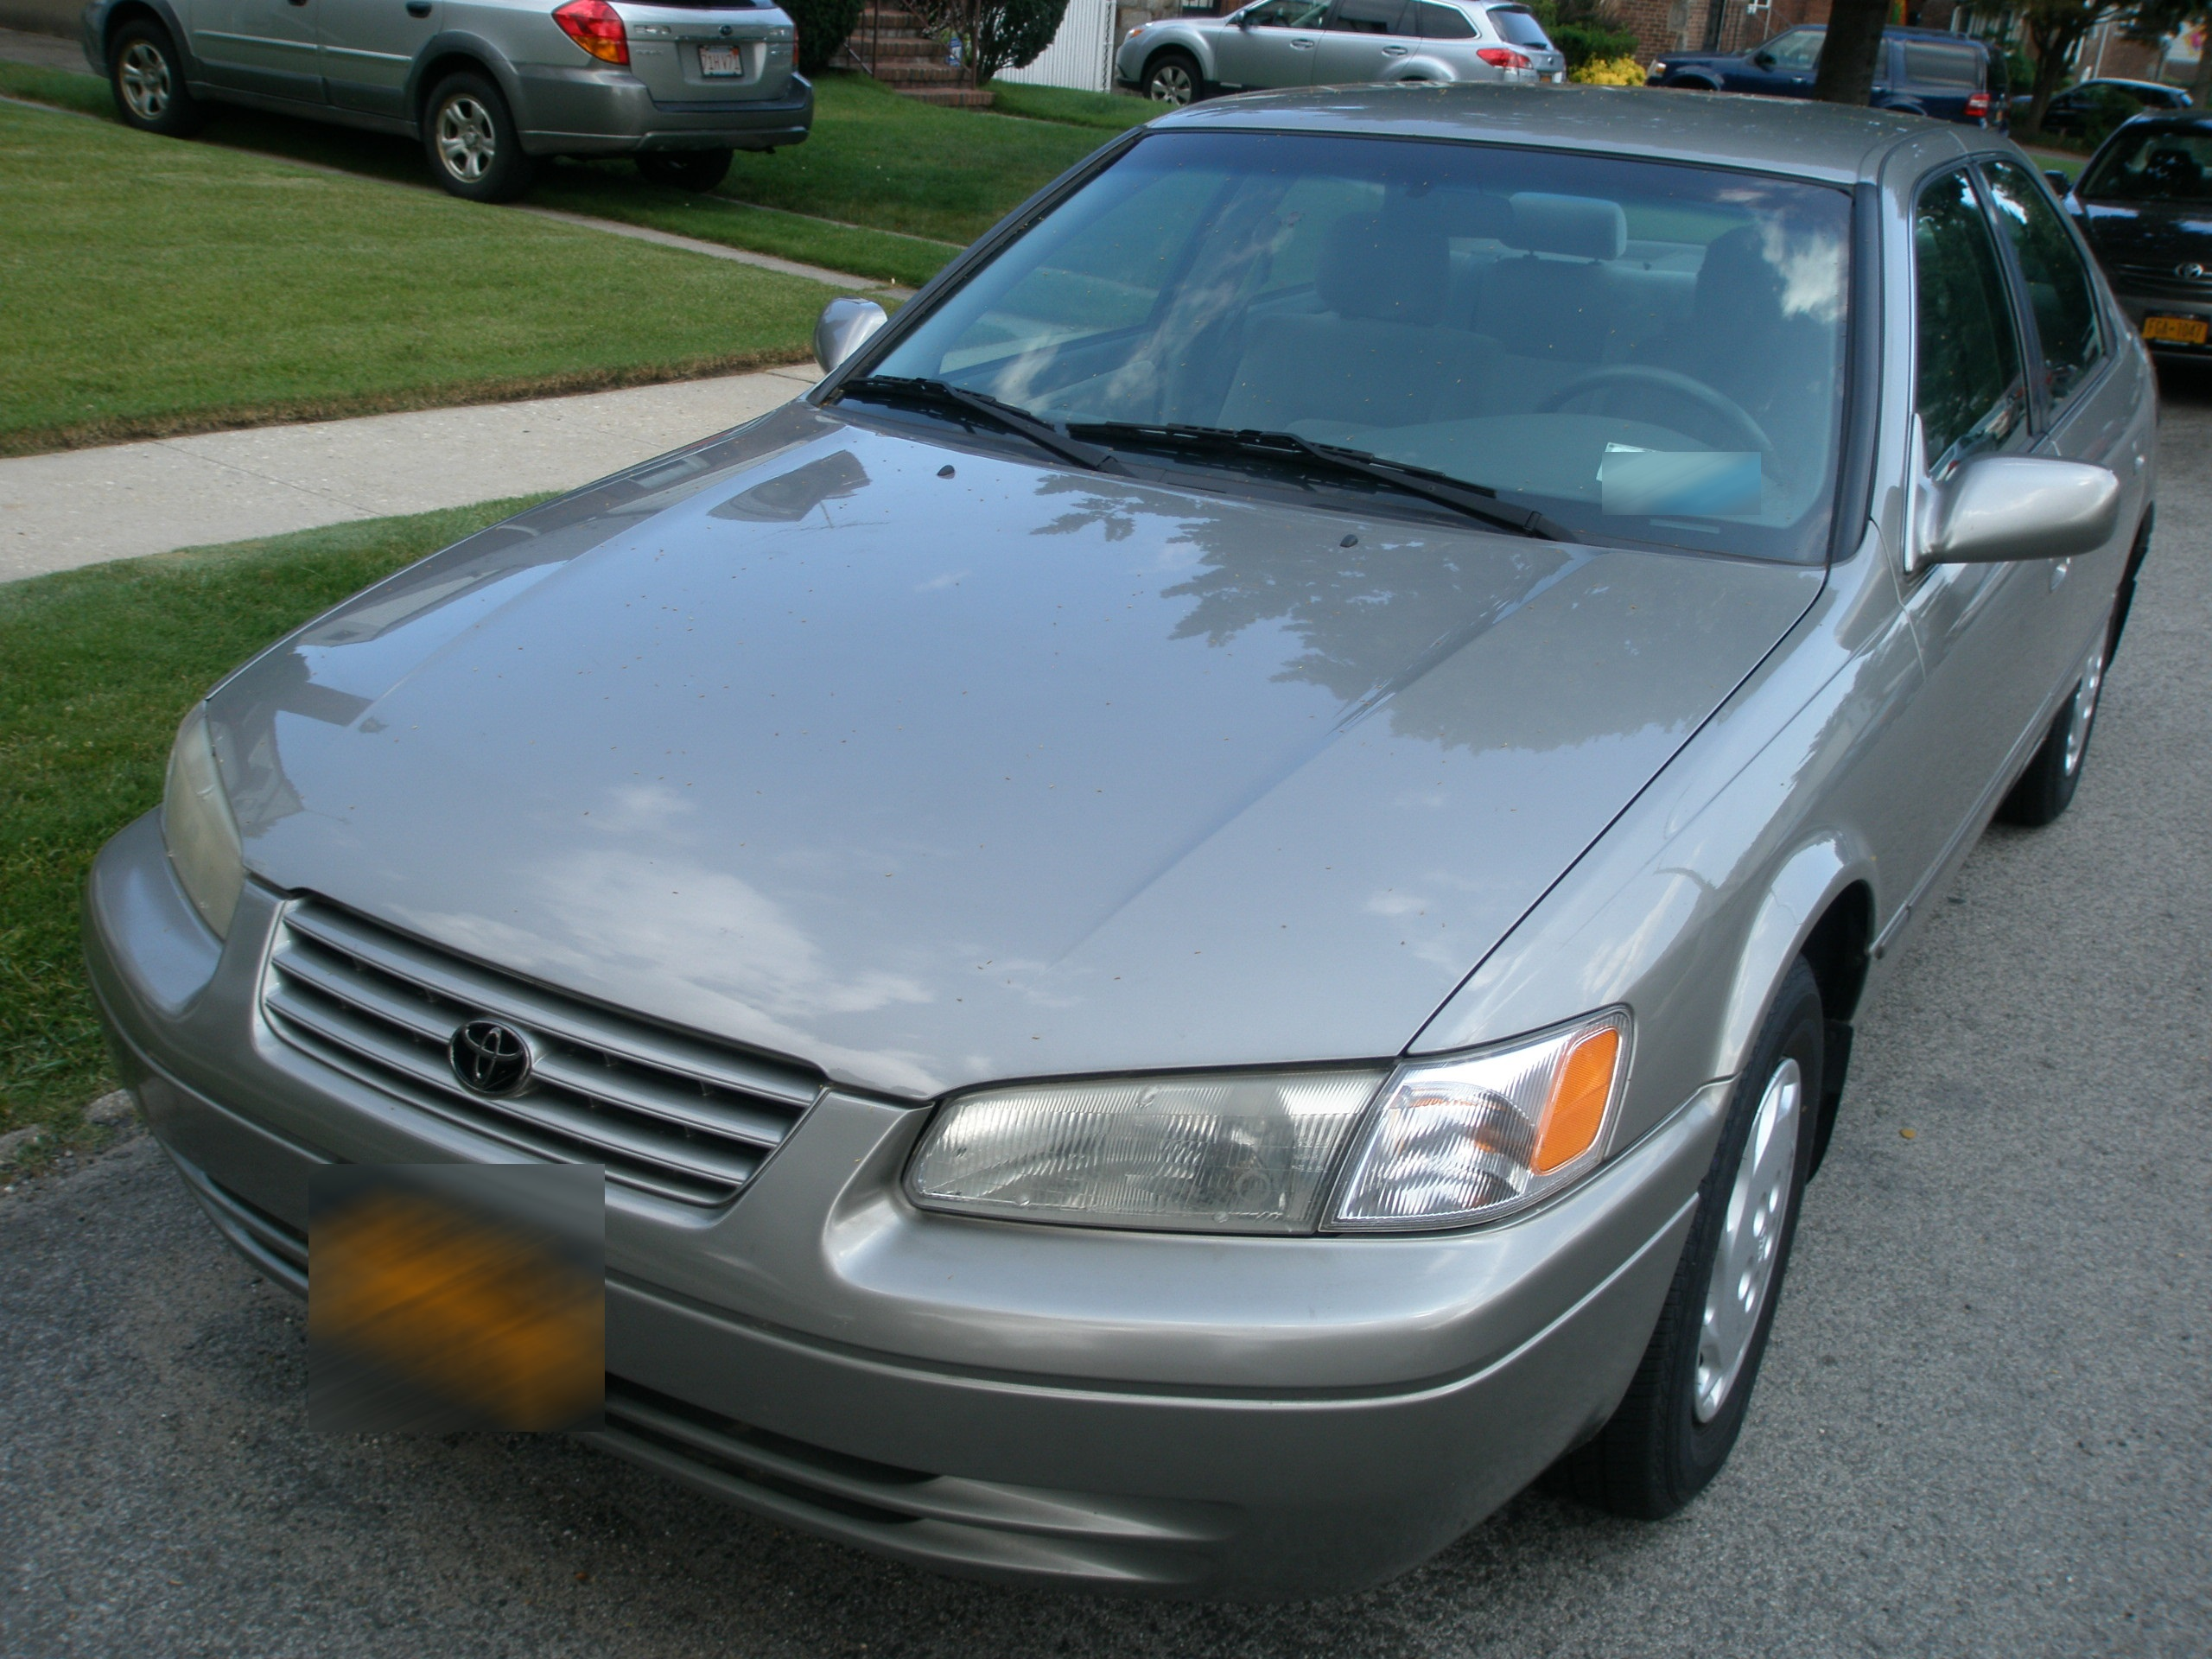 what is your ideal mileage of the used car age of the used car